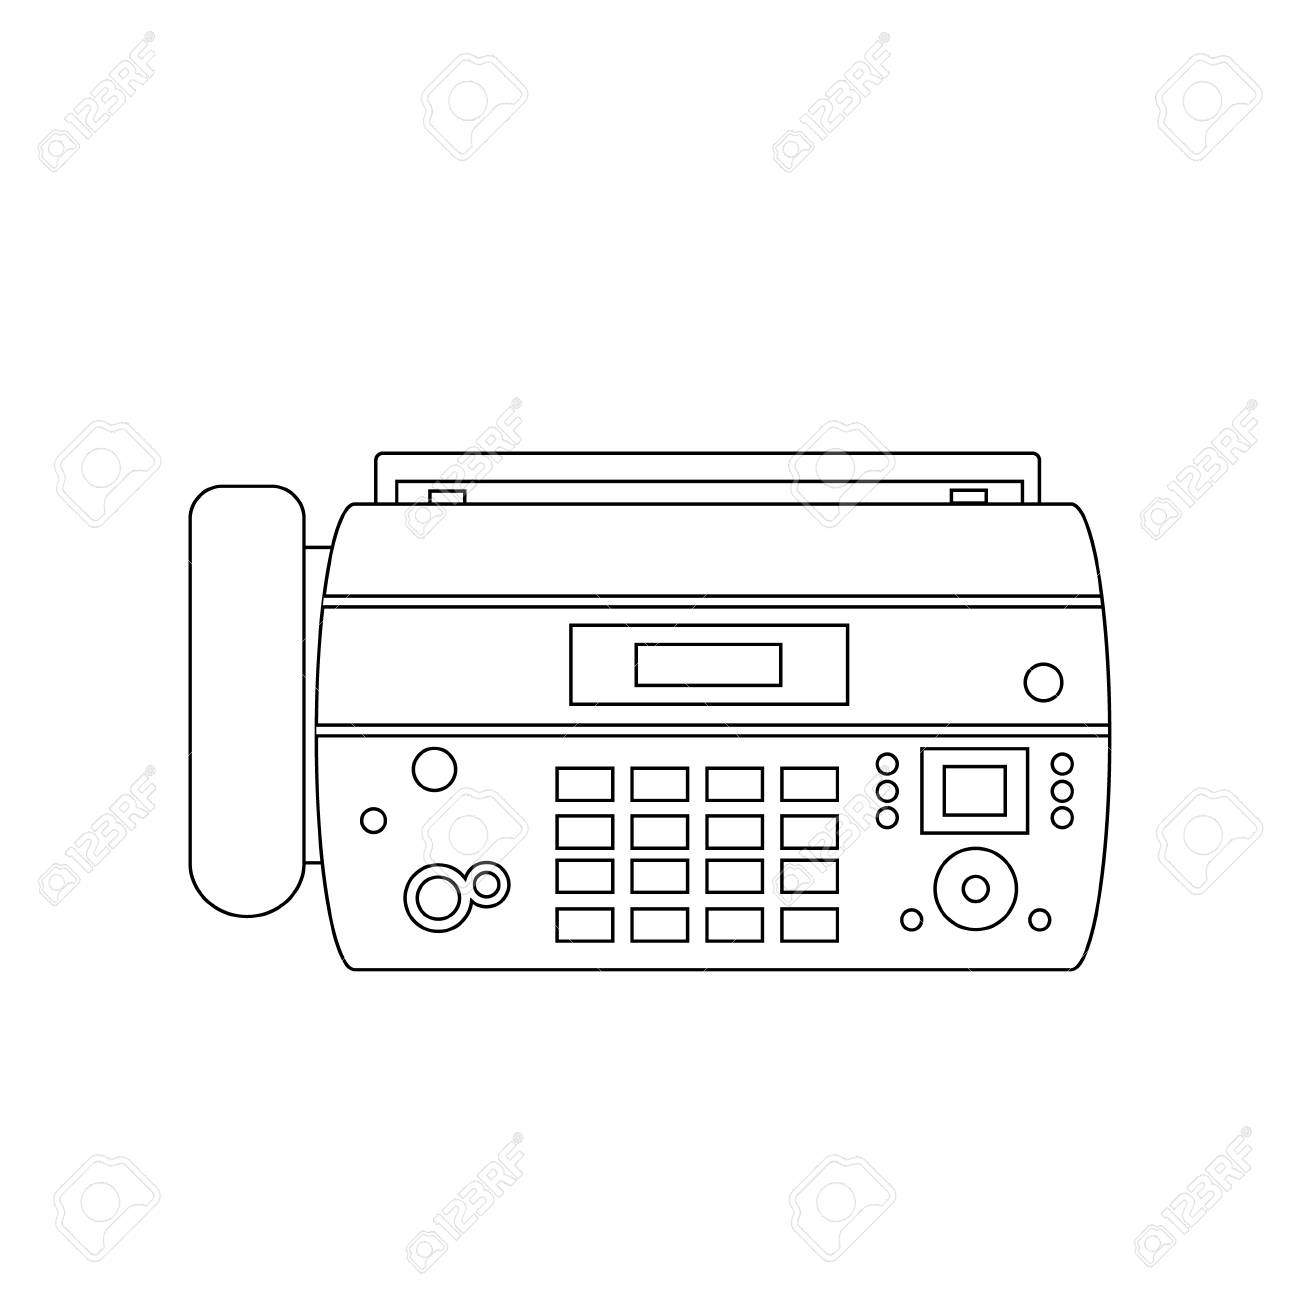 fax machine office phone equipment telephone, connection office phone,  digital fax receiver line icon